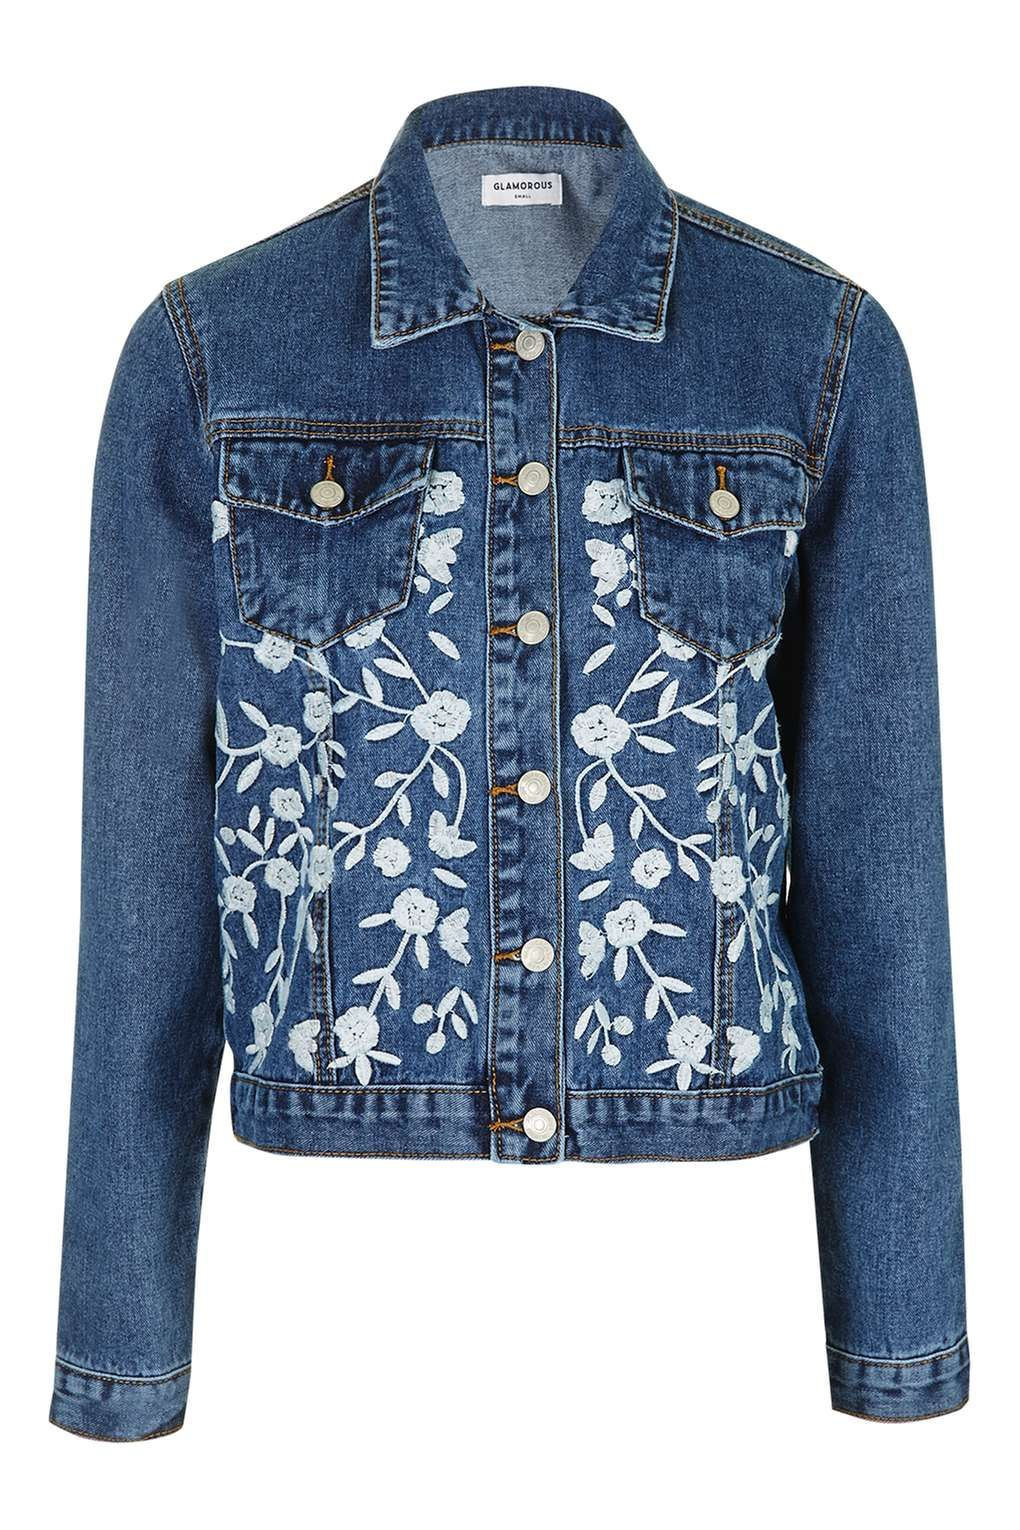 **Embroidered Denim Jacket by Glamorous